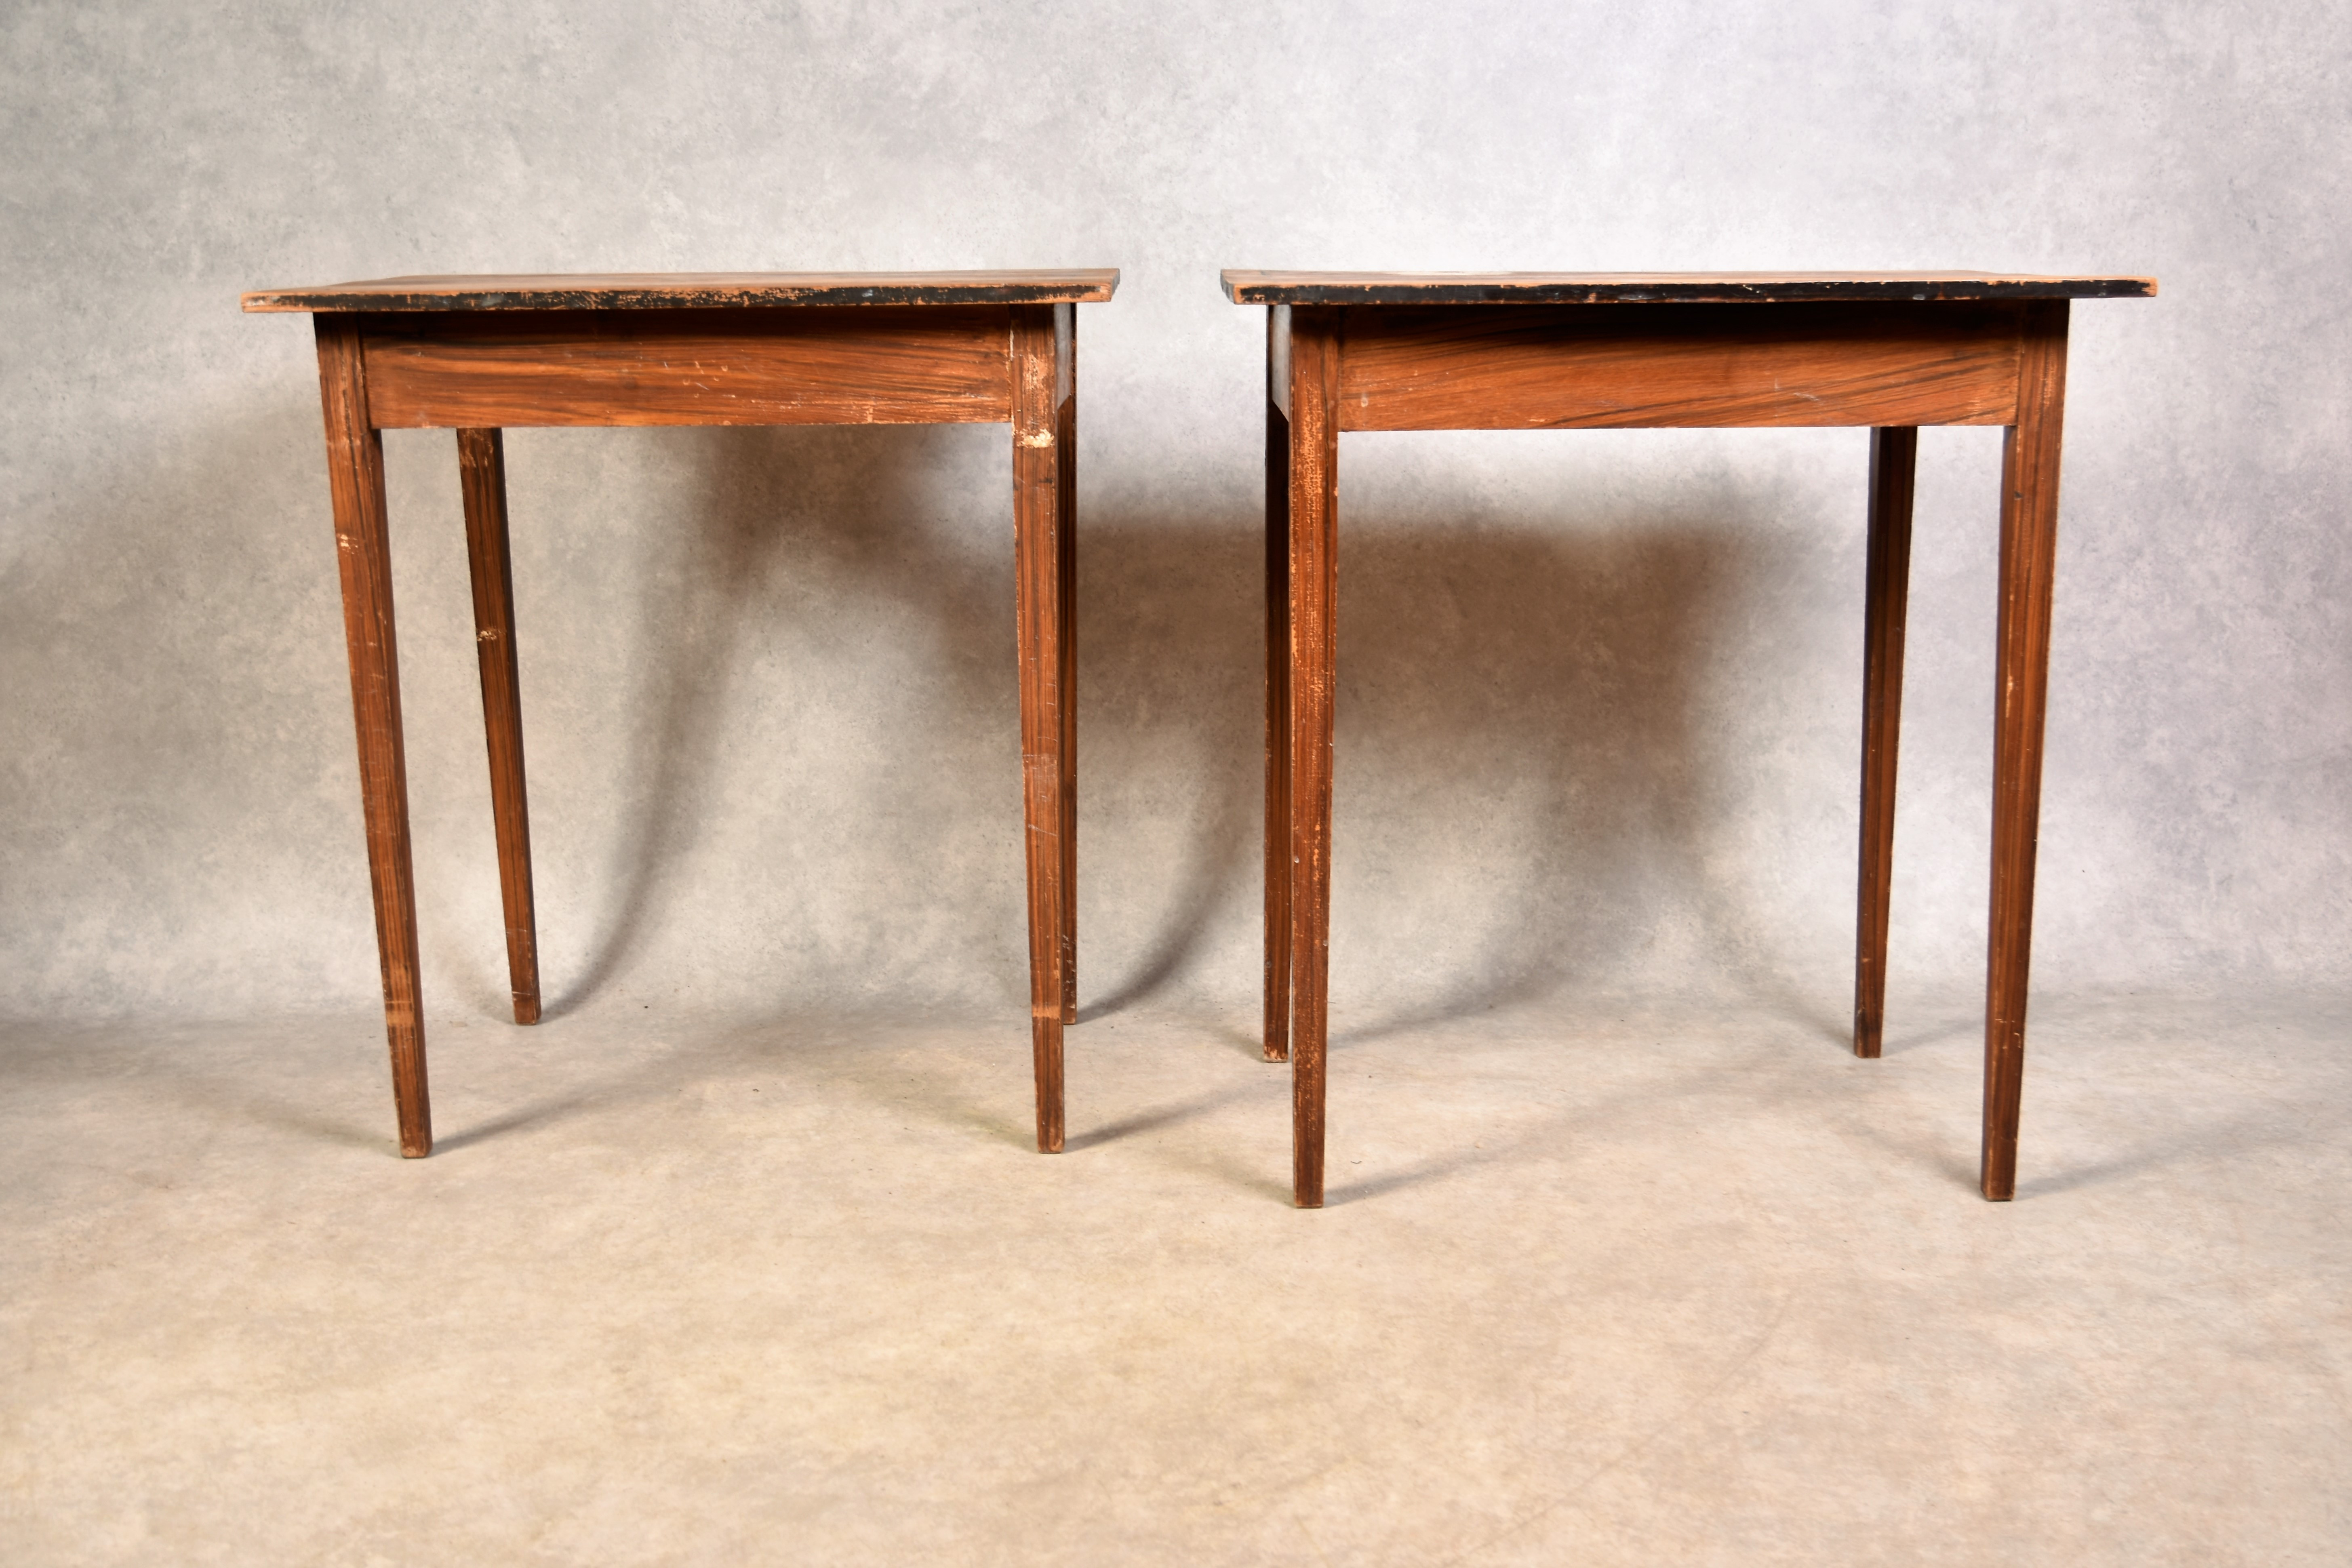 TABLE, 1800s. Furniture Tables Auctionet